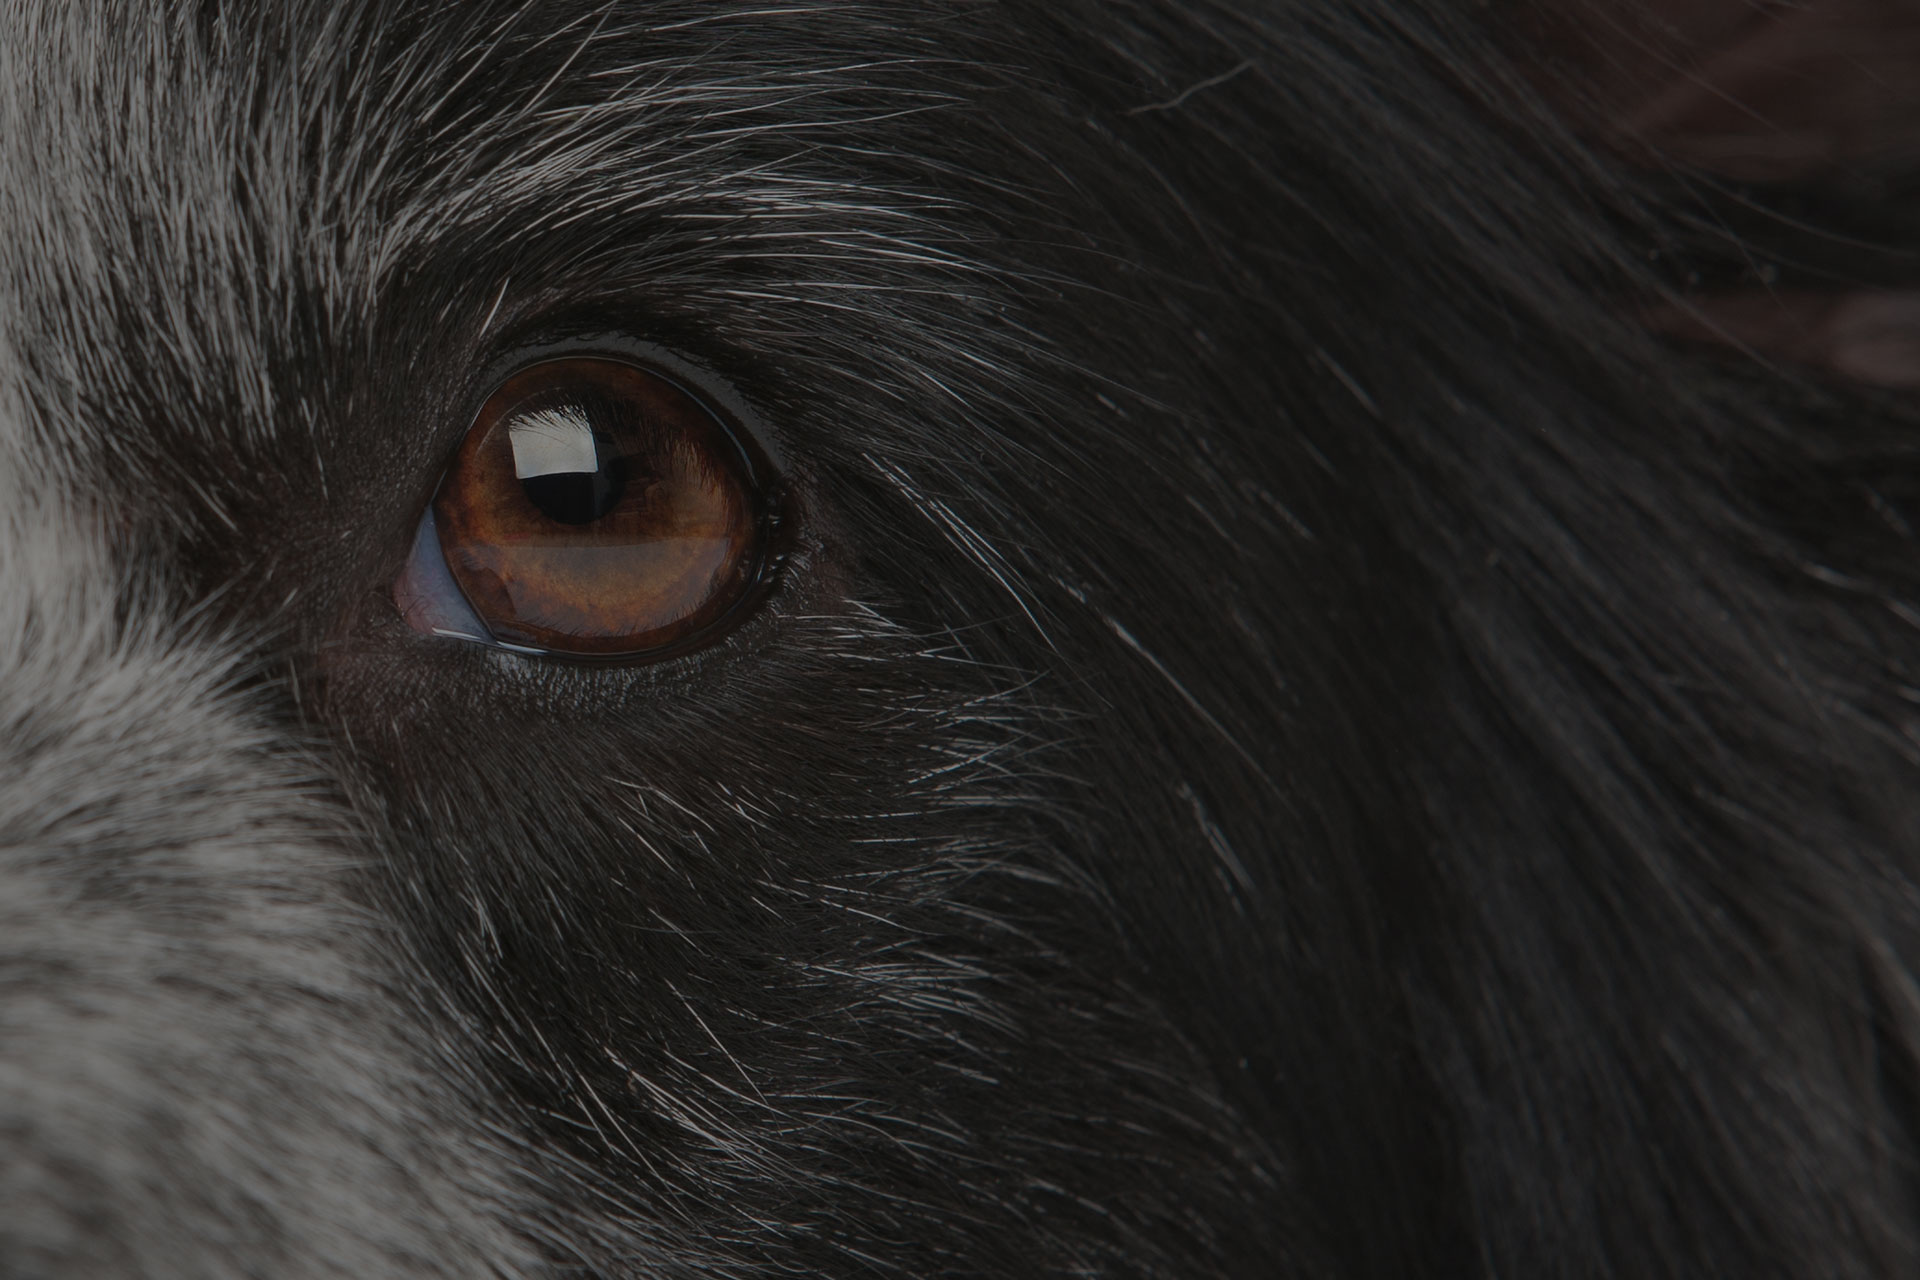 Dog eye close up